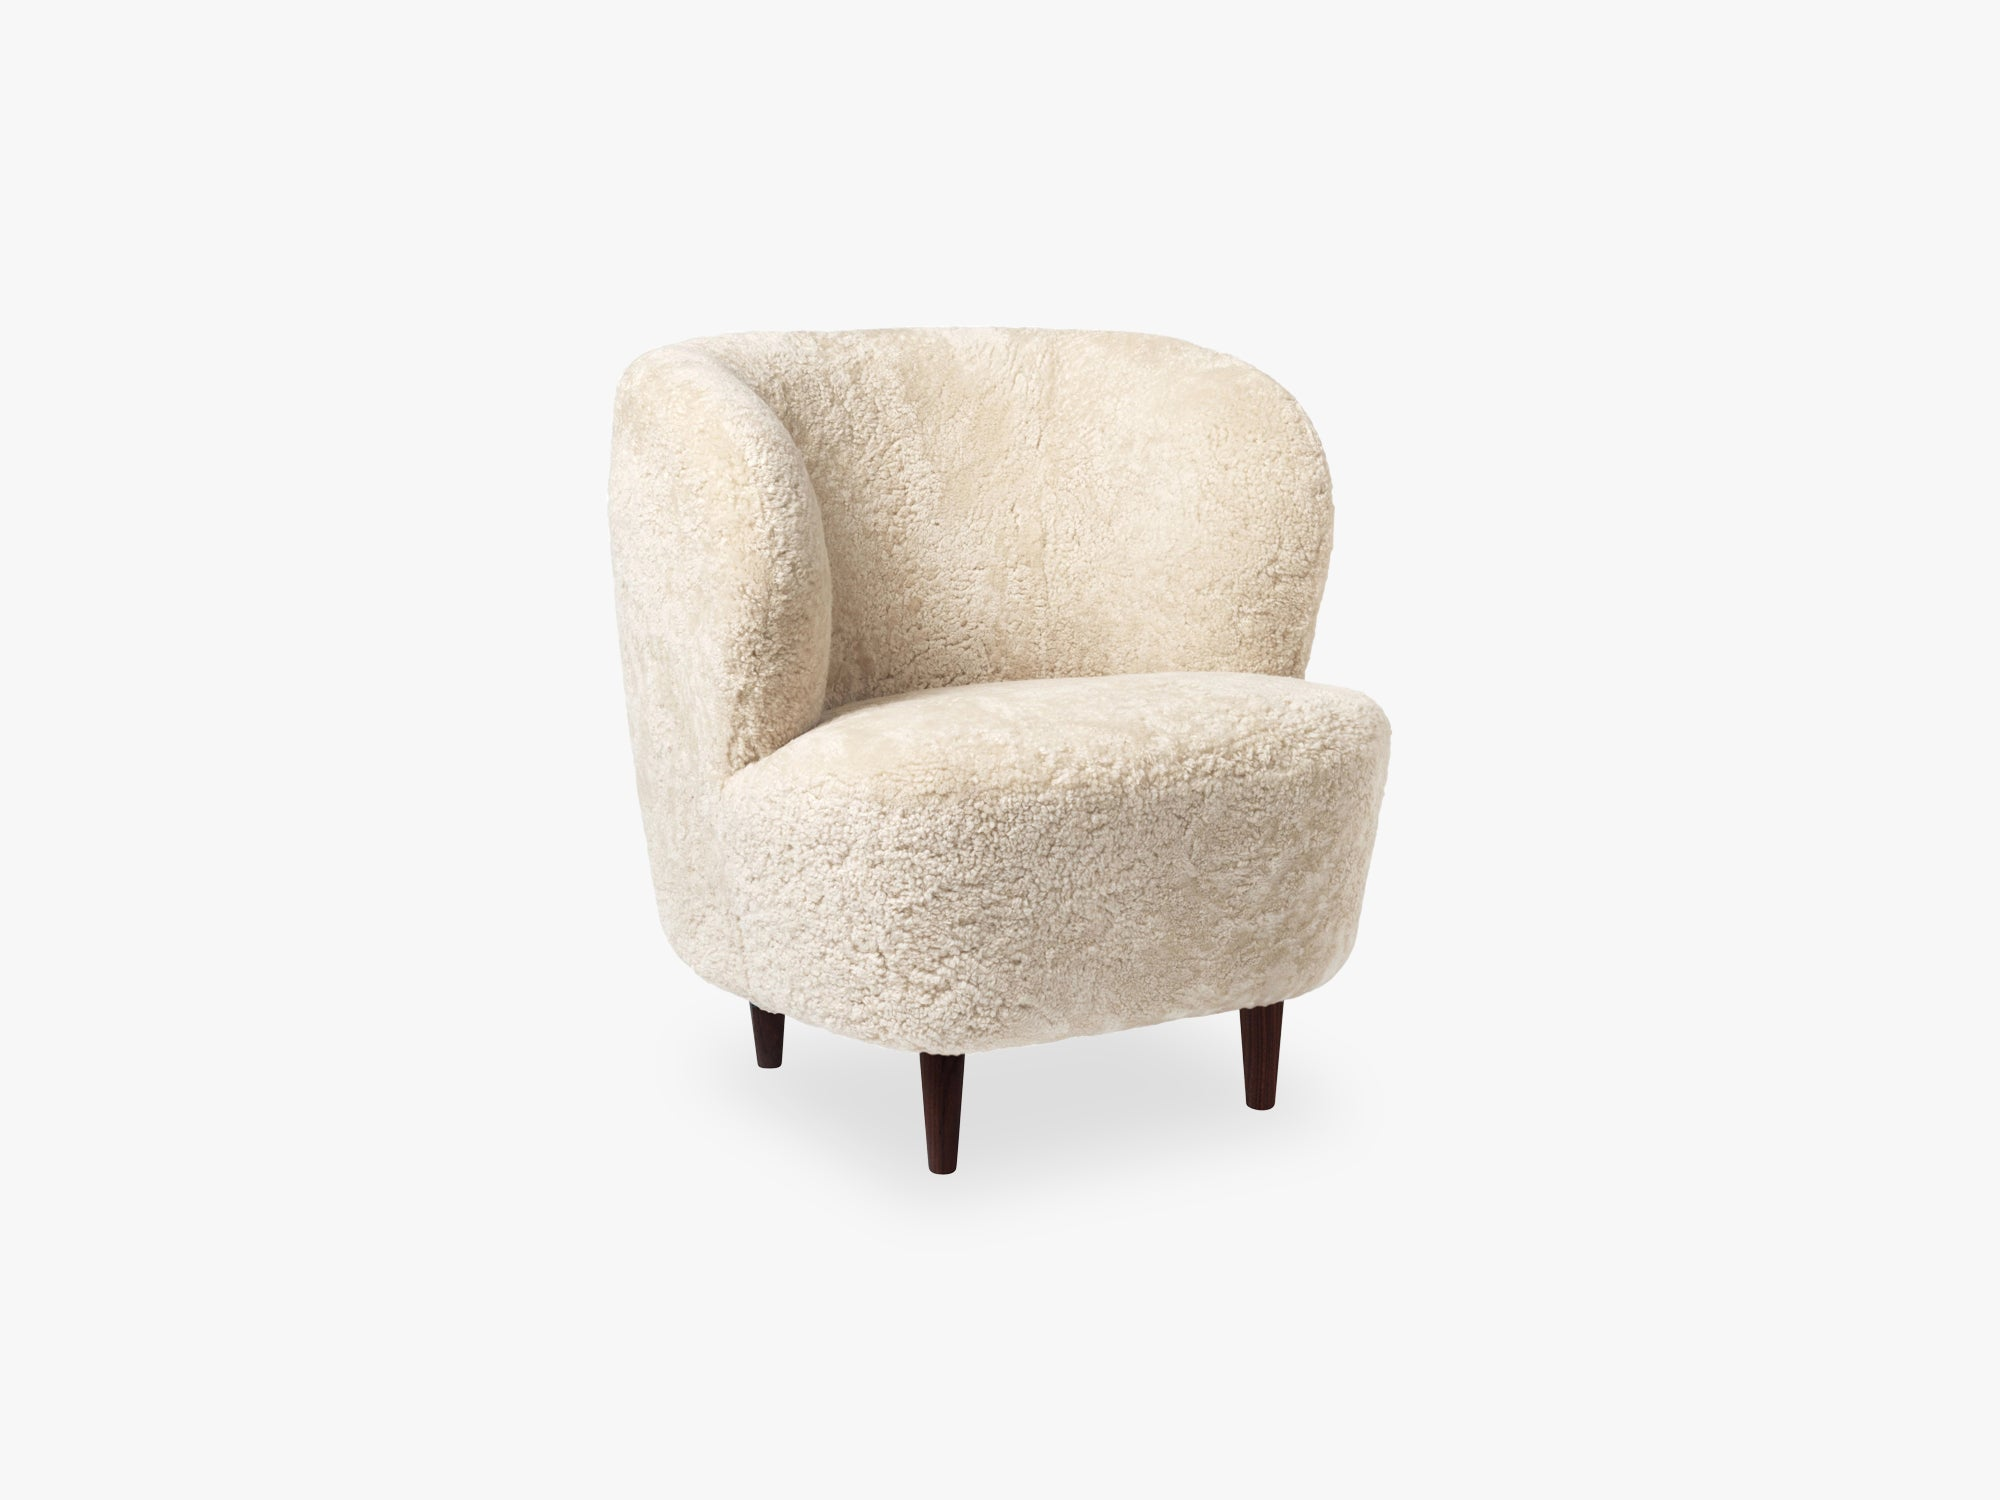 Stay Lounge Chair - Smoked Oak, Moonlight sheepskin fra GUBI